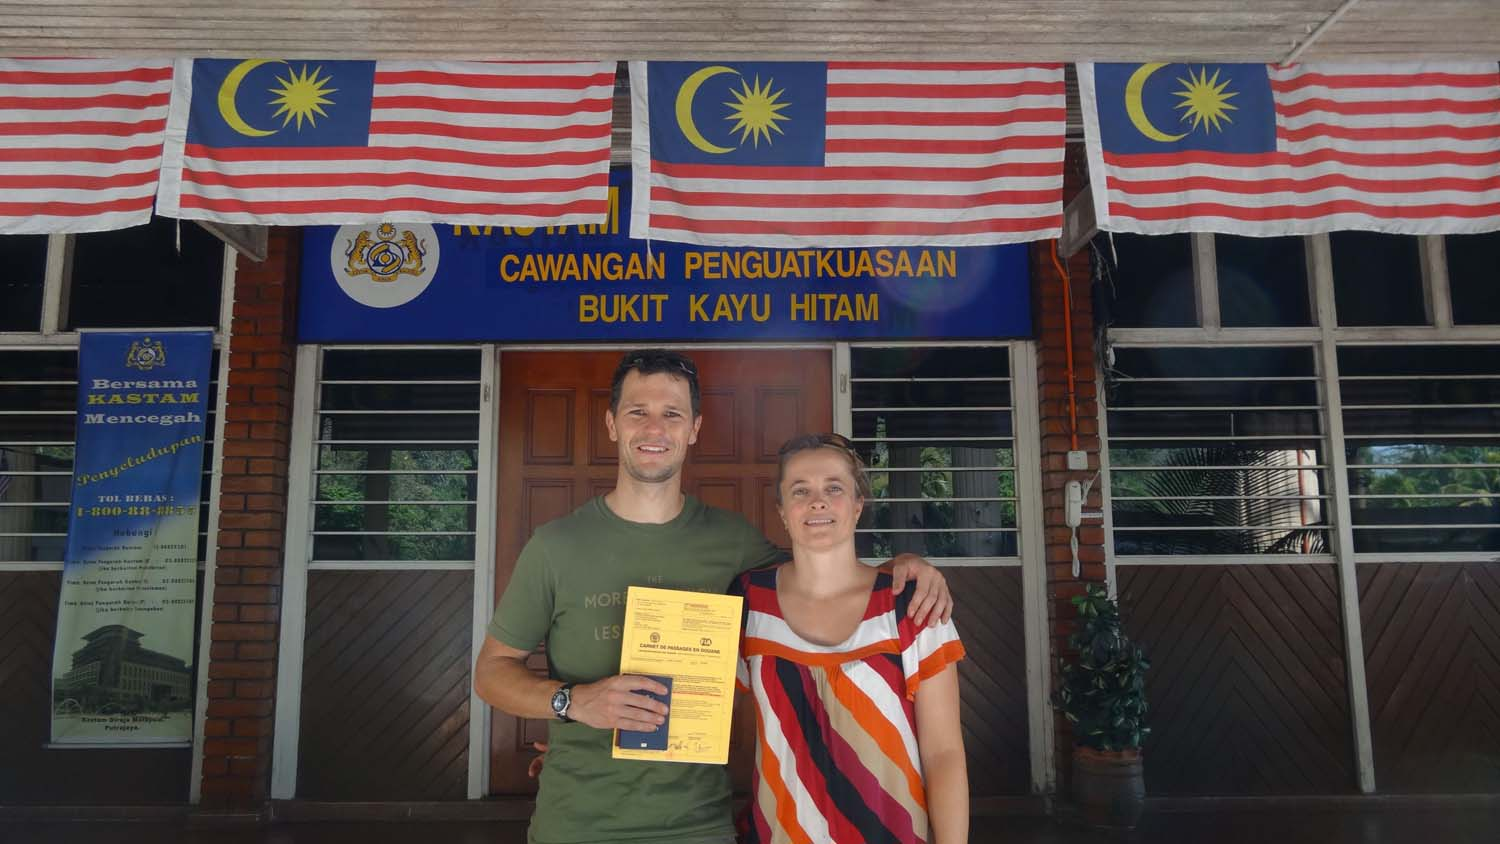 We got our carnet de passage stamped as we exit Malaysia